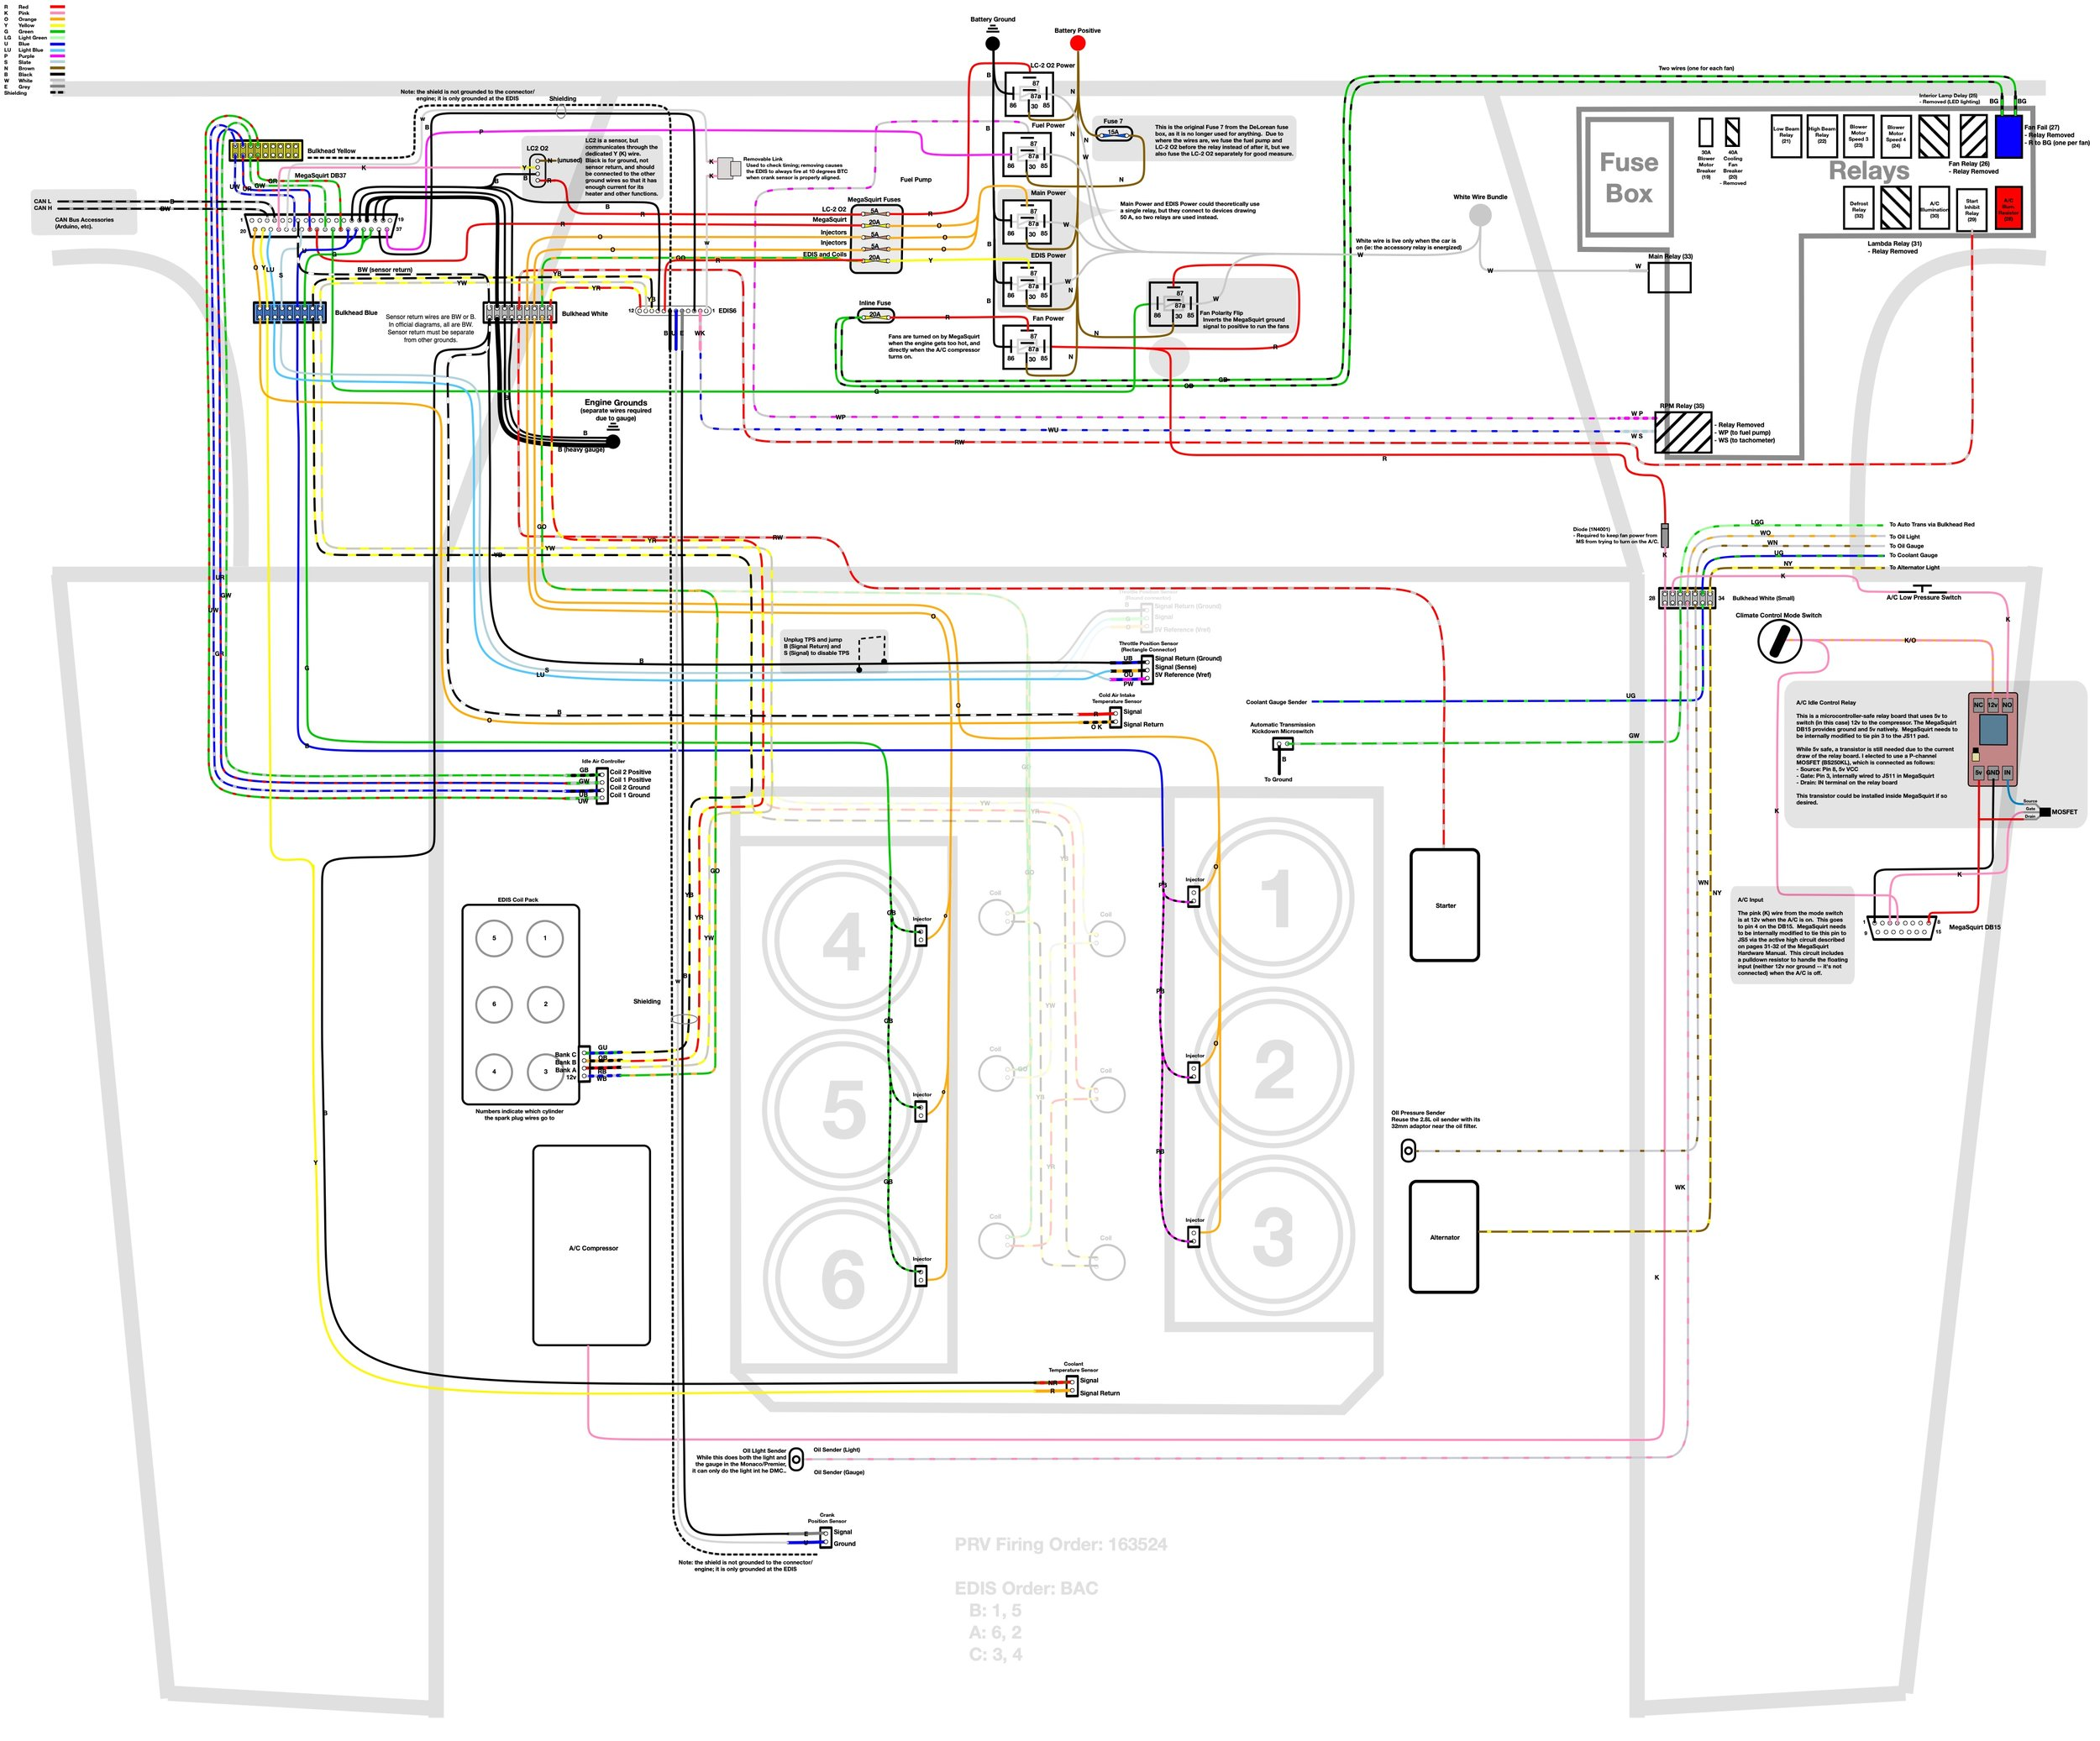 ooma wiring diagram ooma image wiring diagram electrical fios wiring diagram fios image wiring diagram on ooma wiring diagram